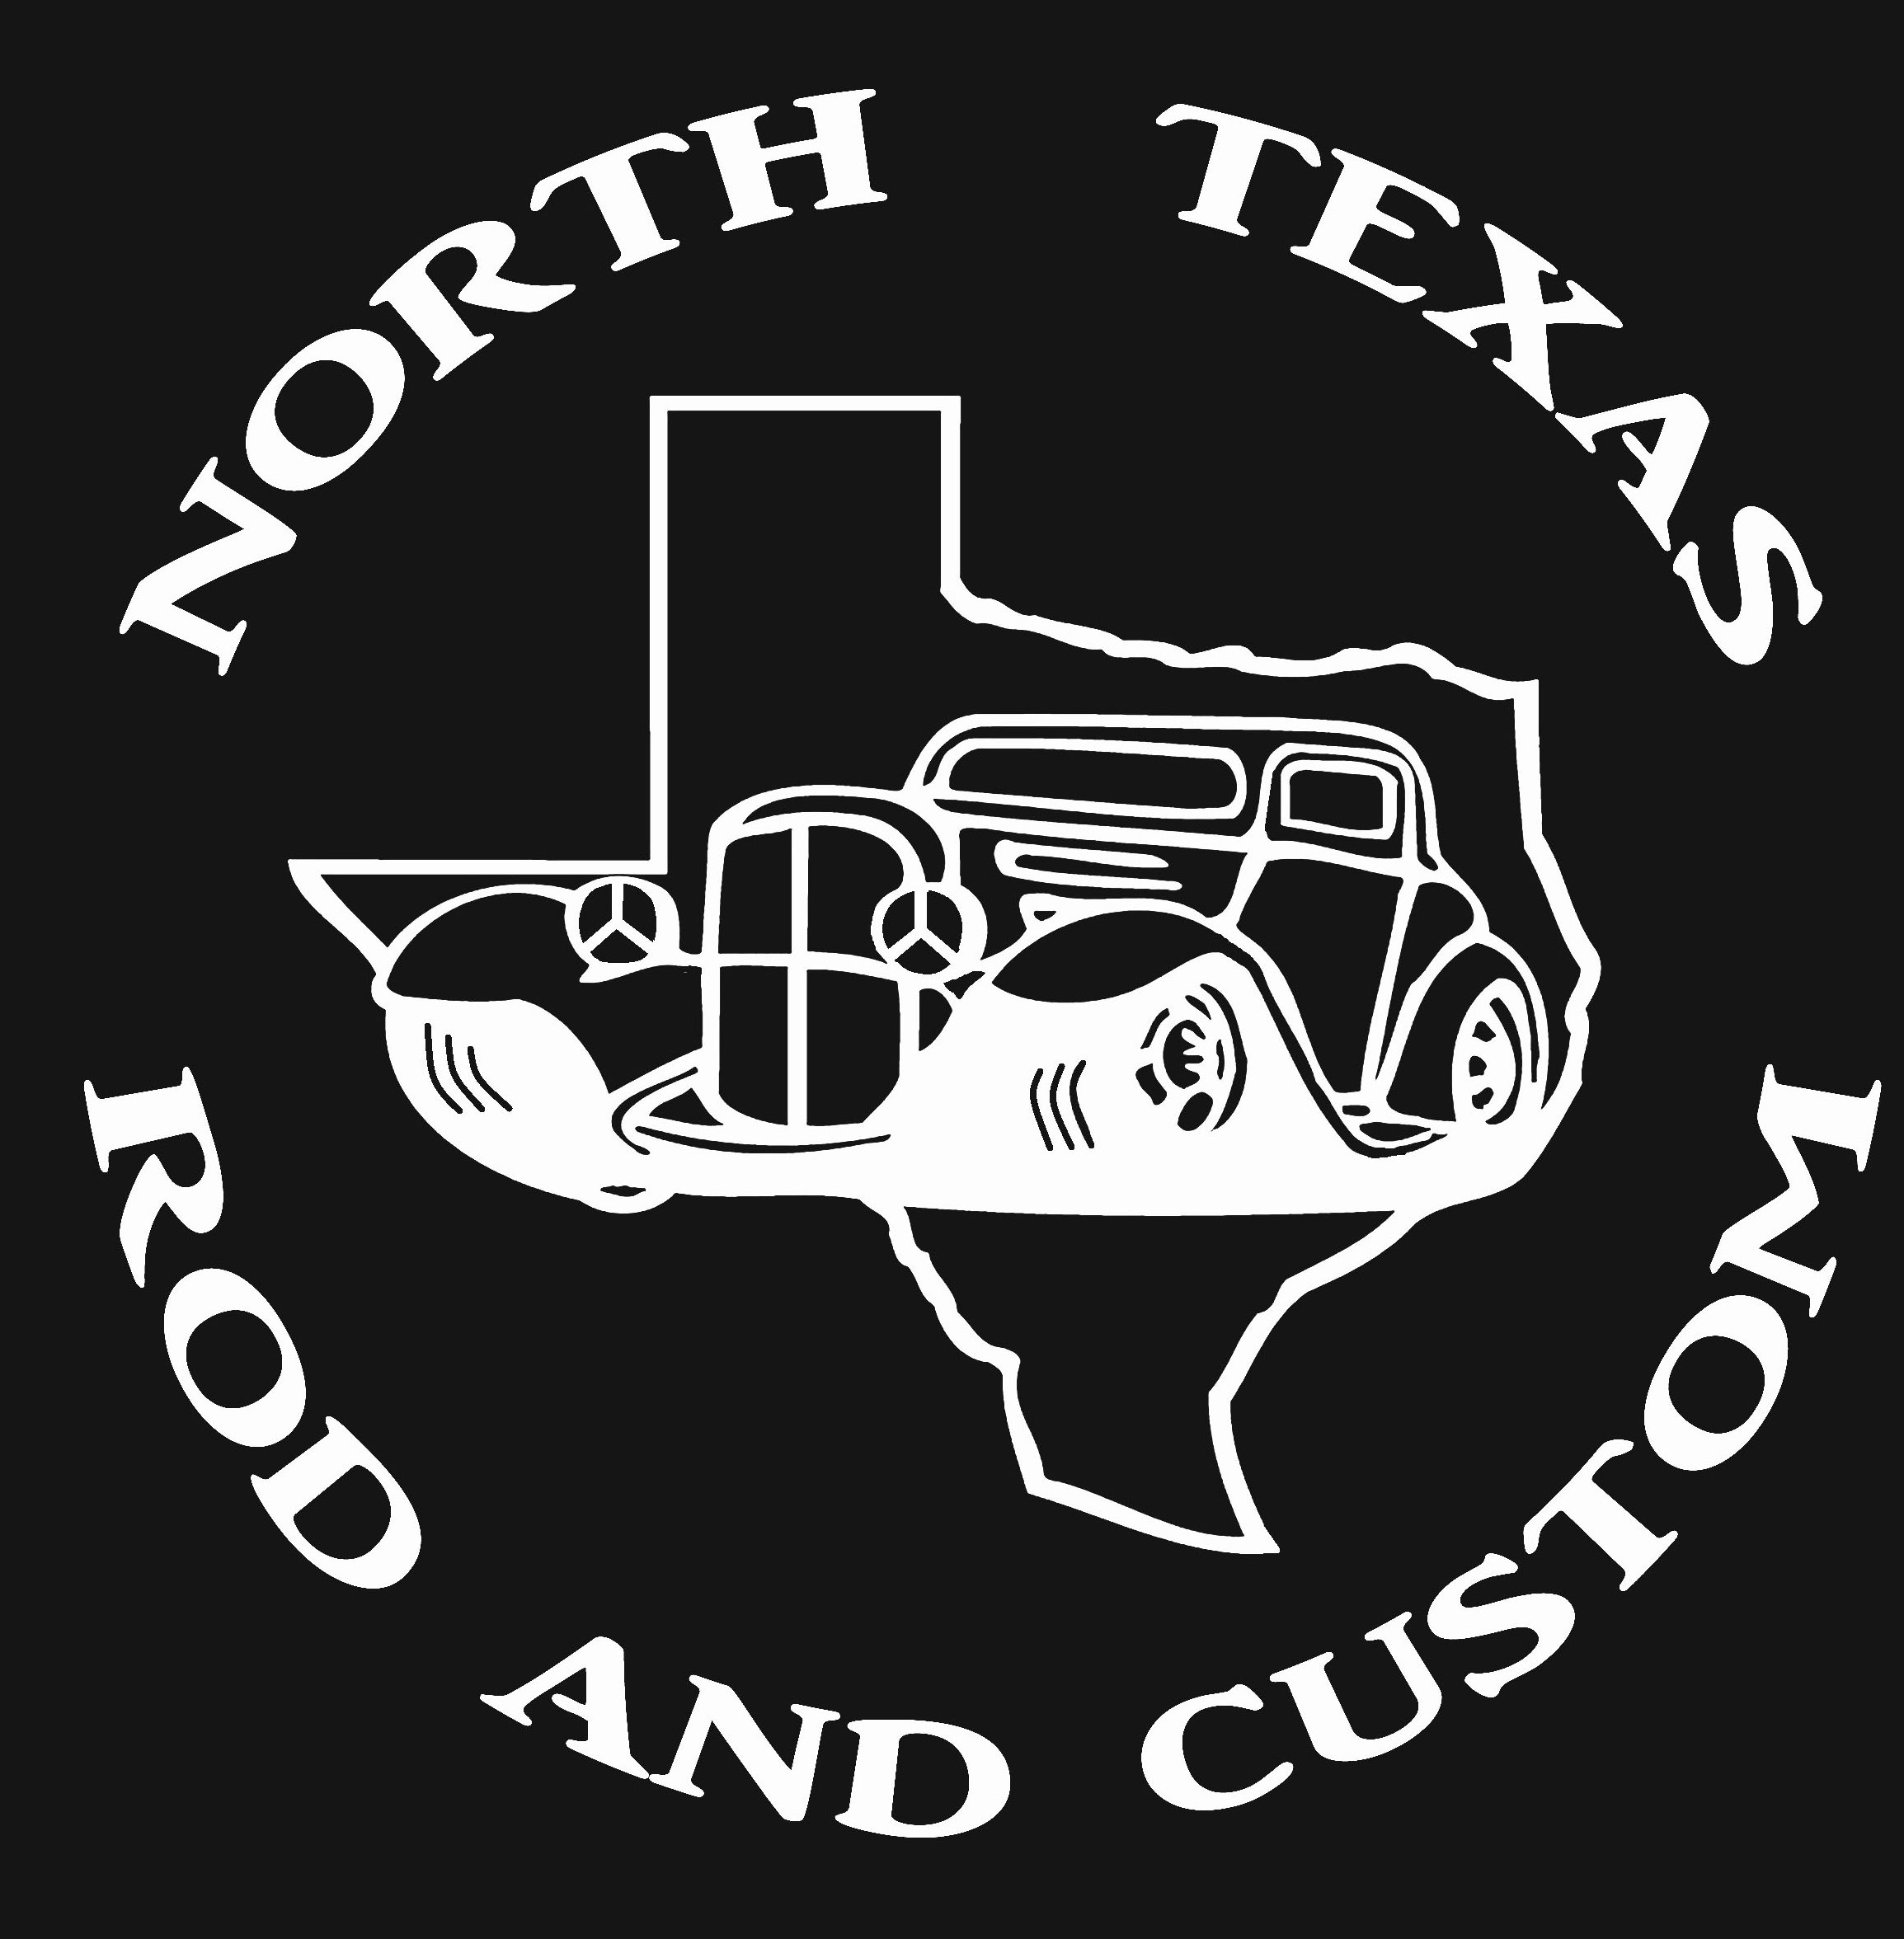 North Texas Rod & Custom